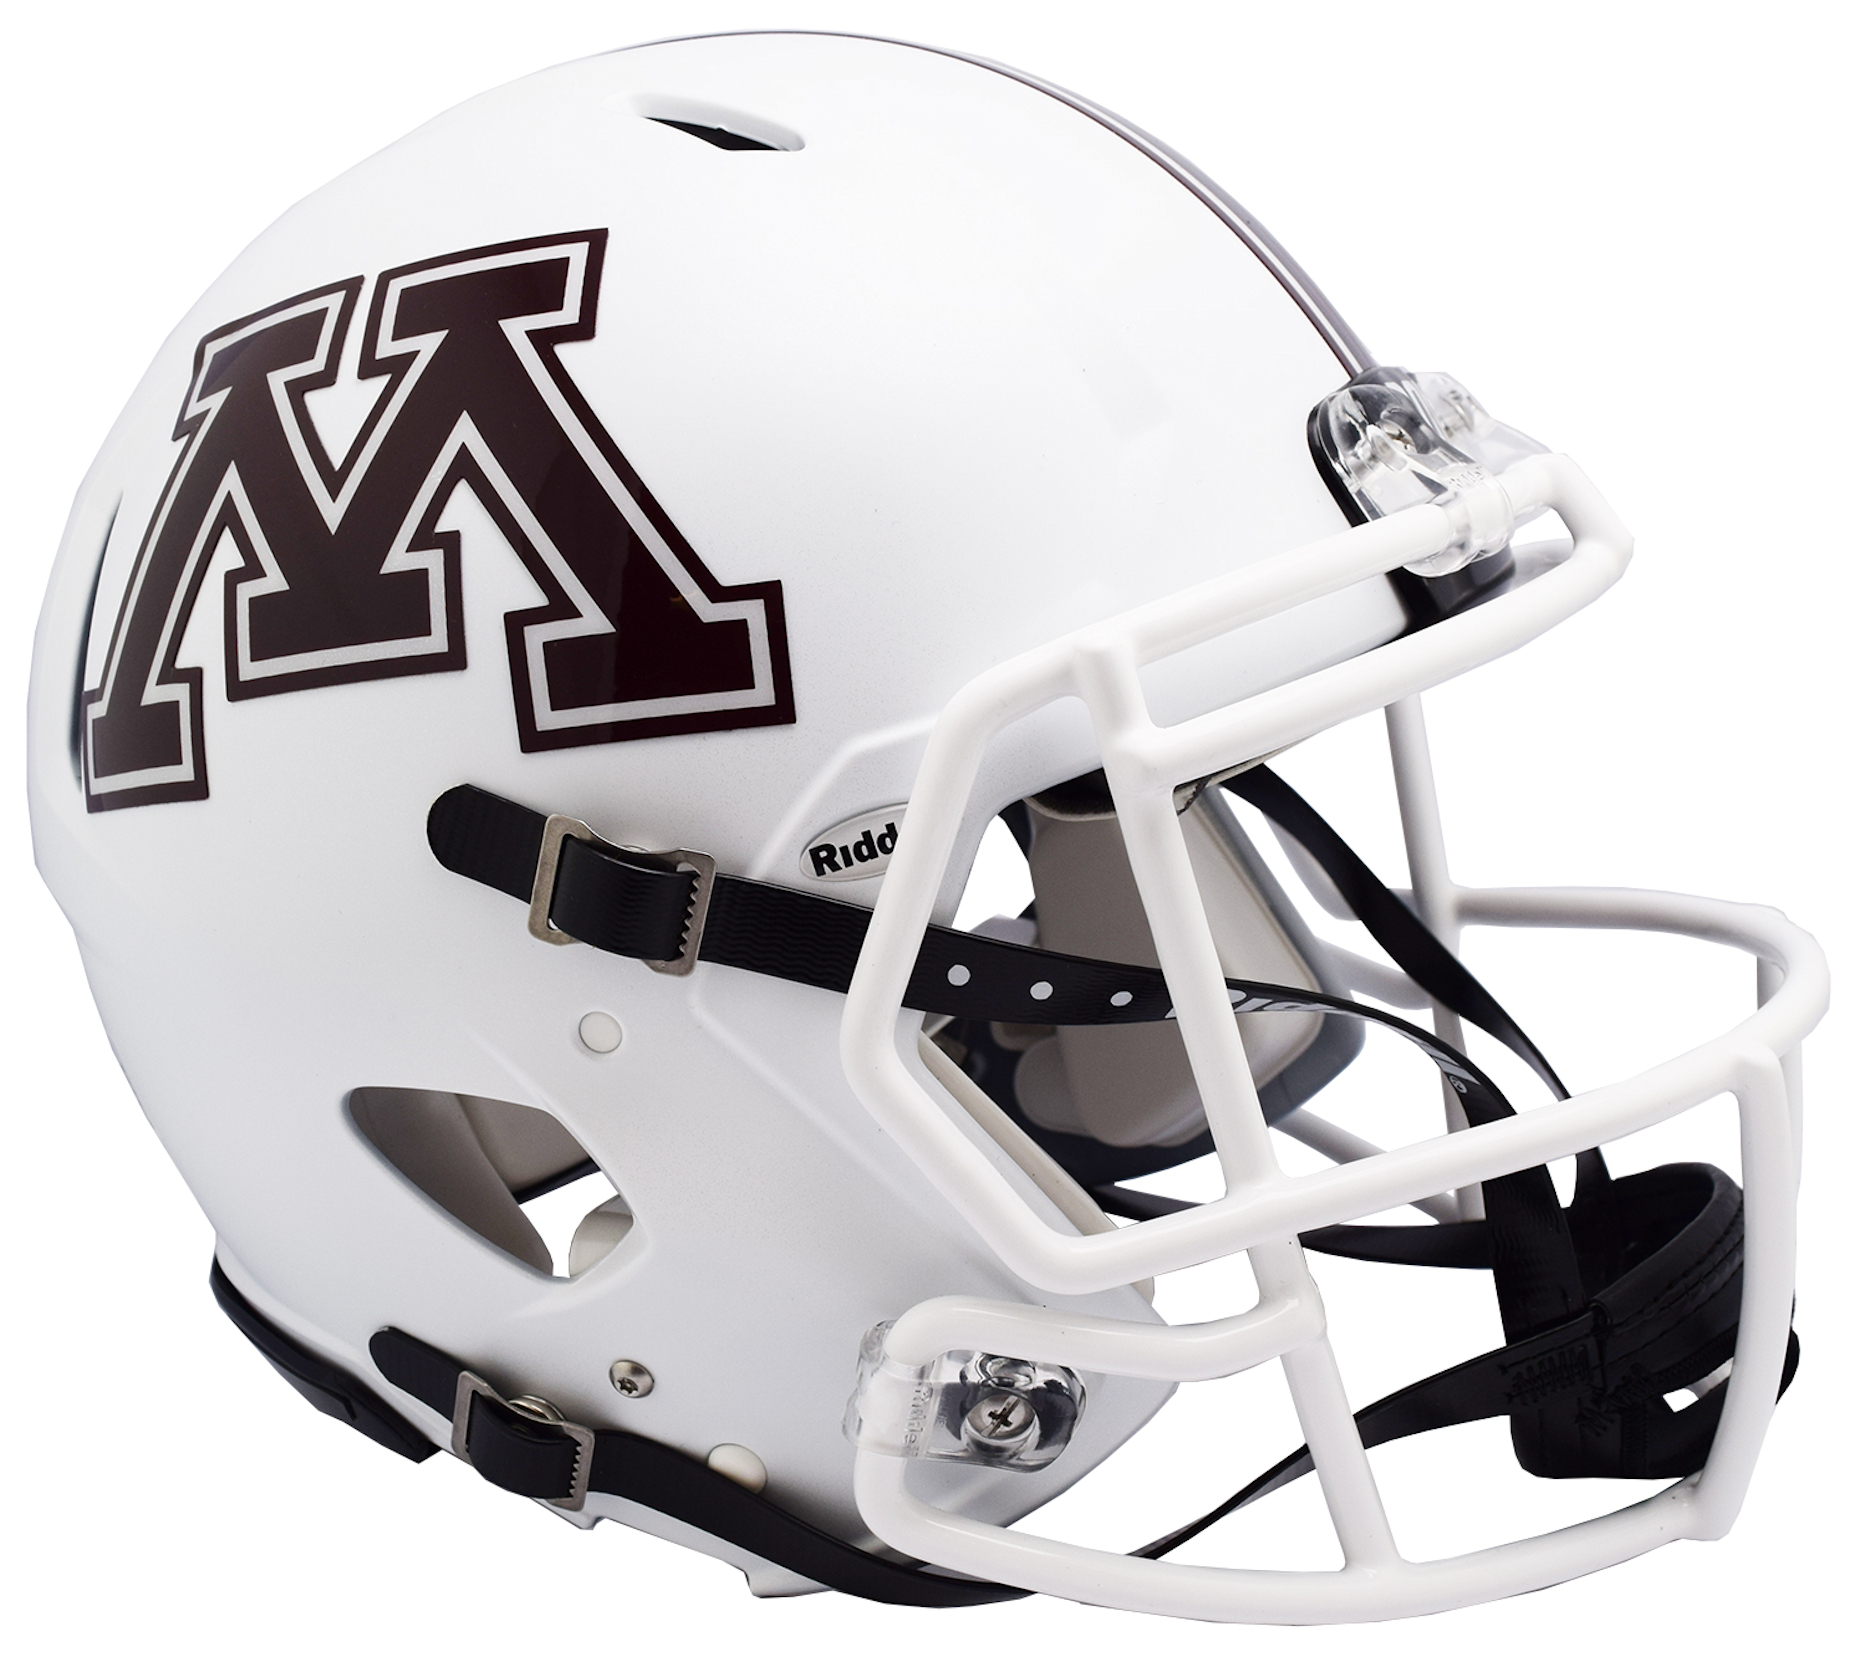 Minnesota Golden Gophers Speed Football Helmet <B>NEW 2018 White</B>